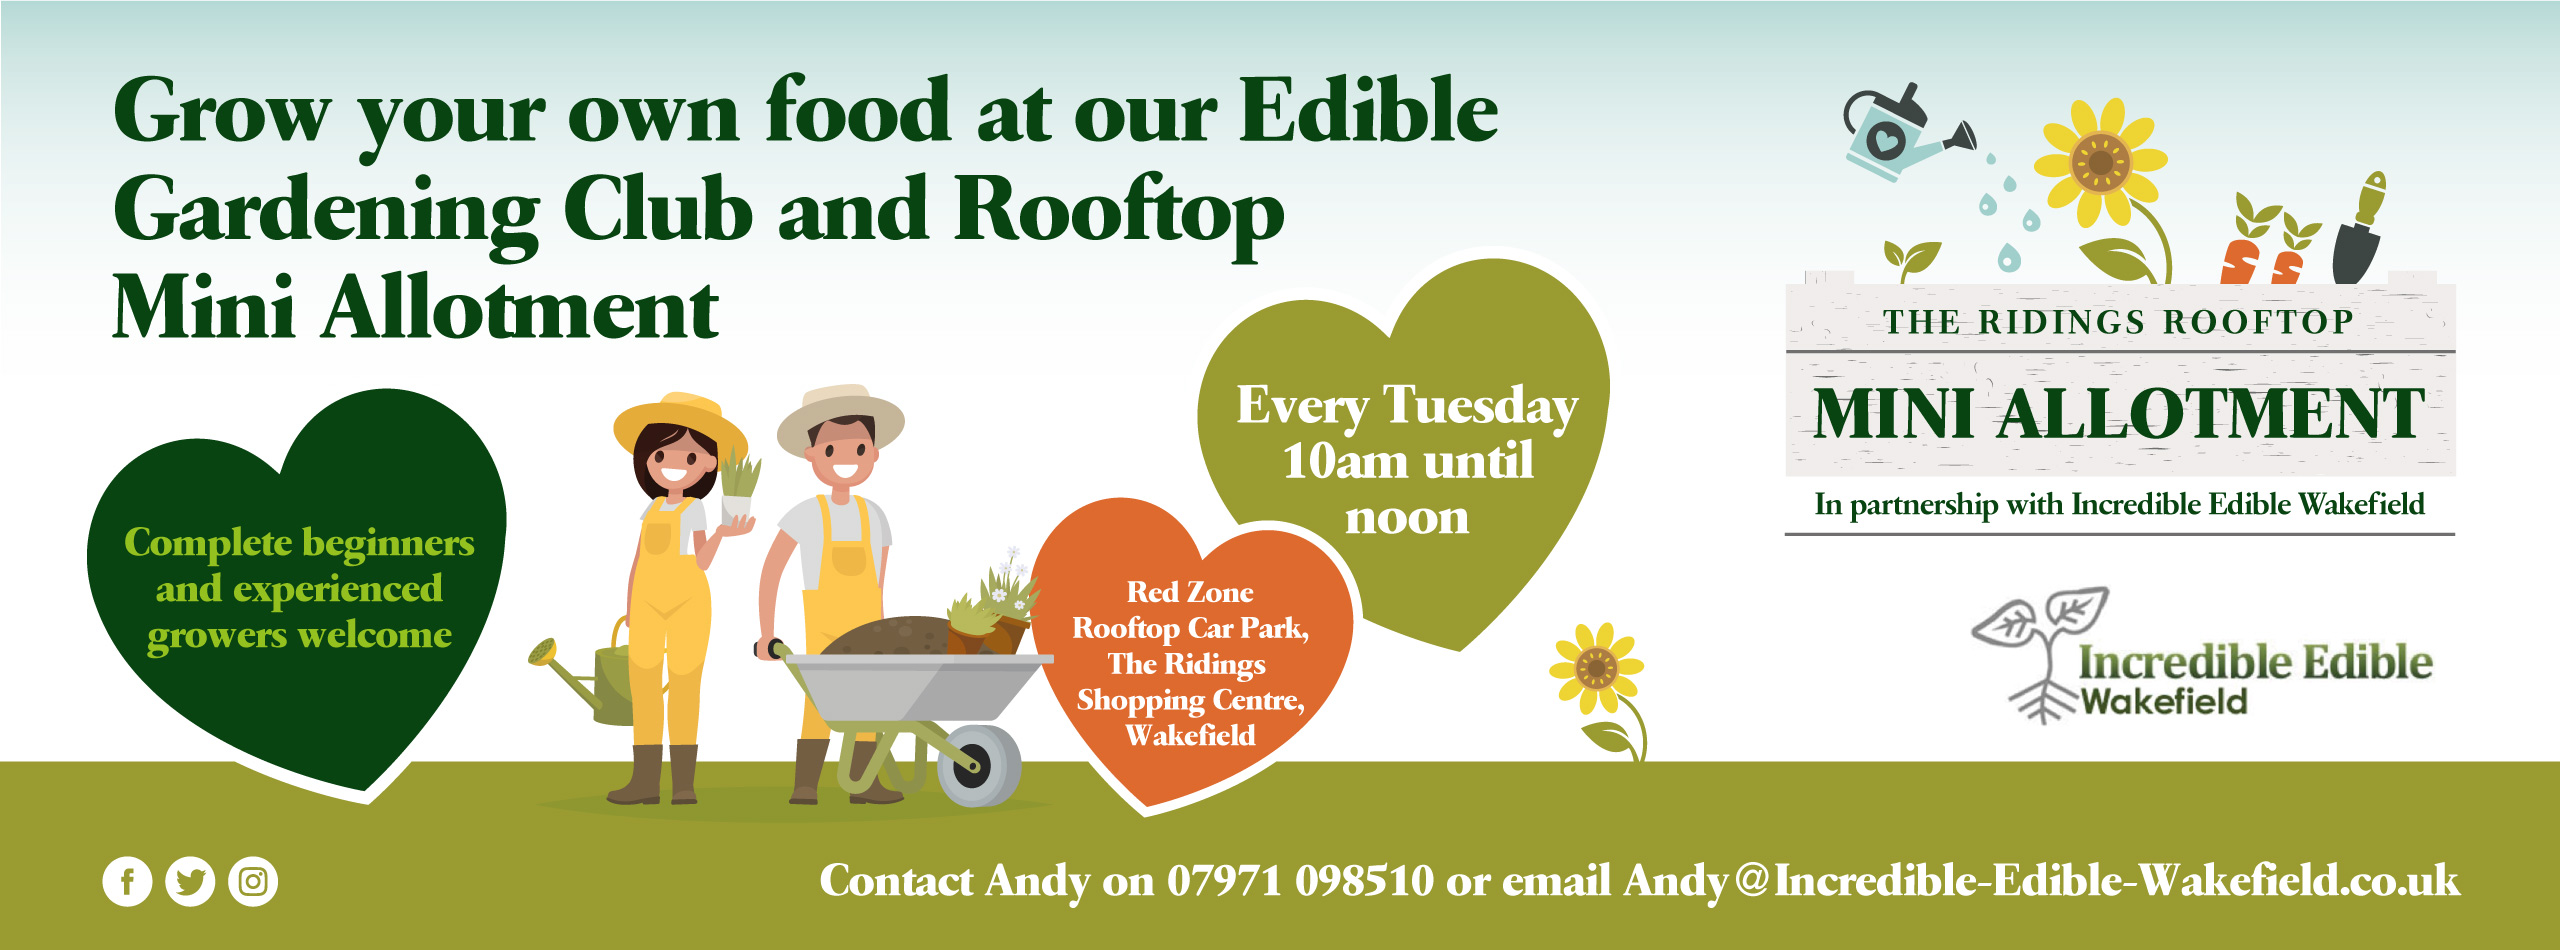 THE-RIDINGS-ROOFTOP-MINI-ALLOTMENT_Web-Banner